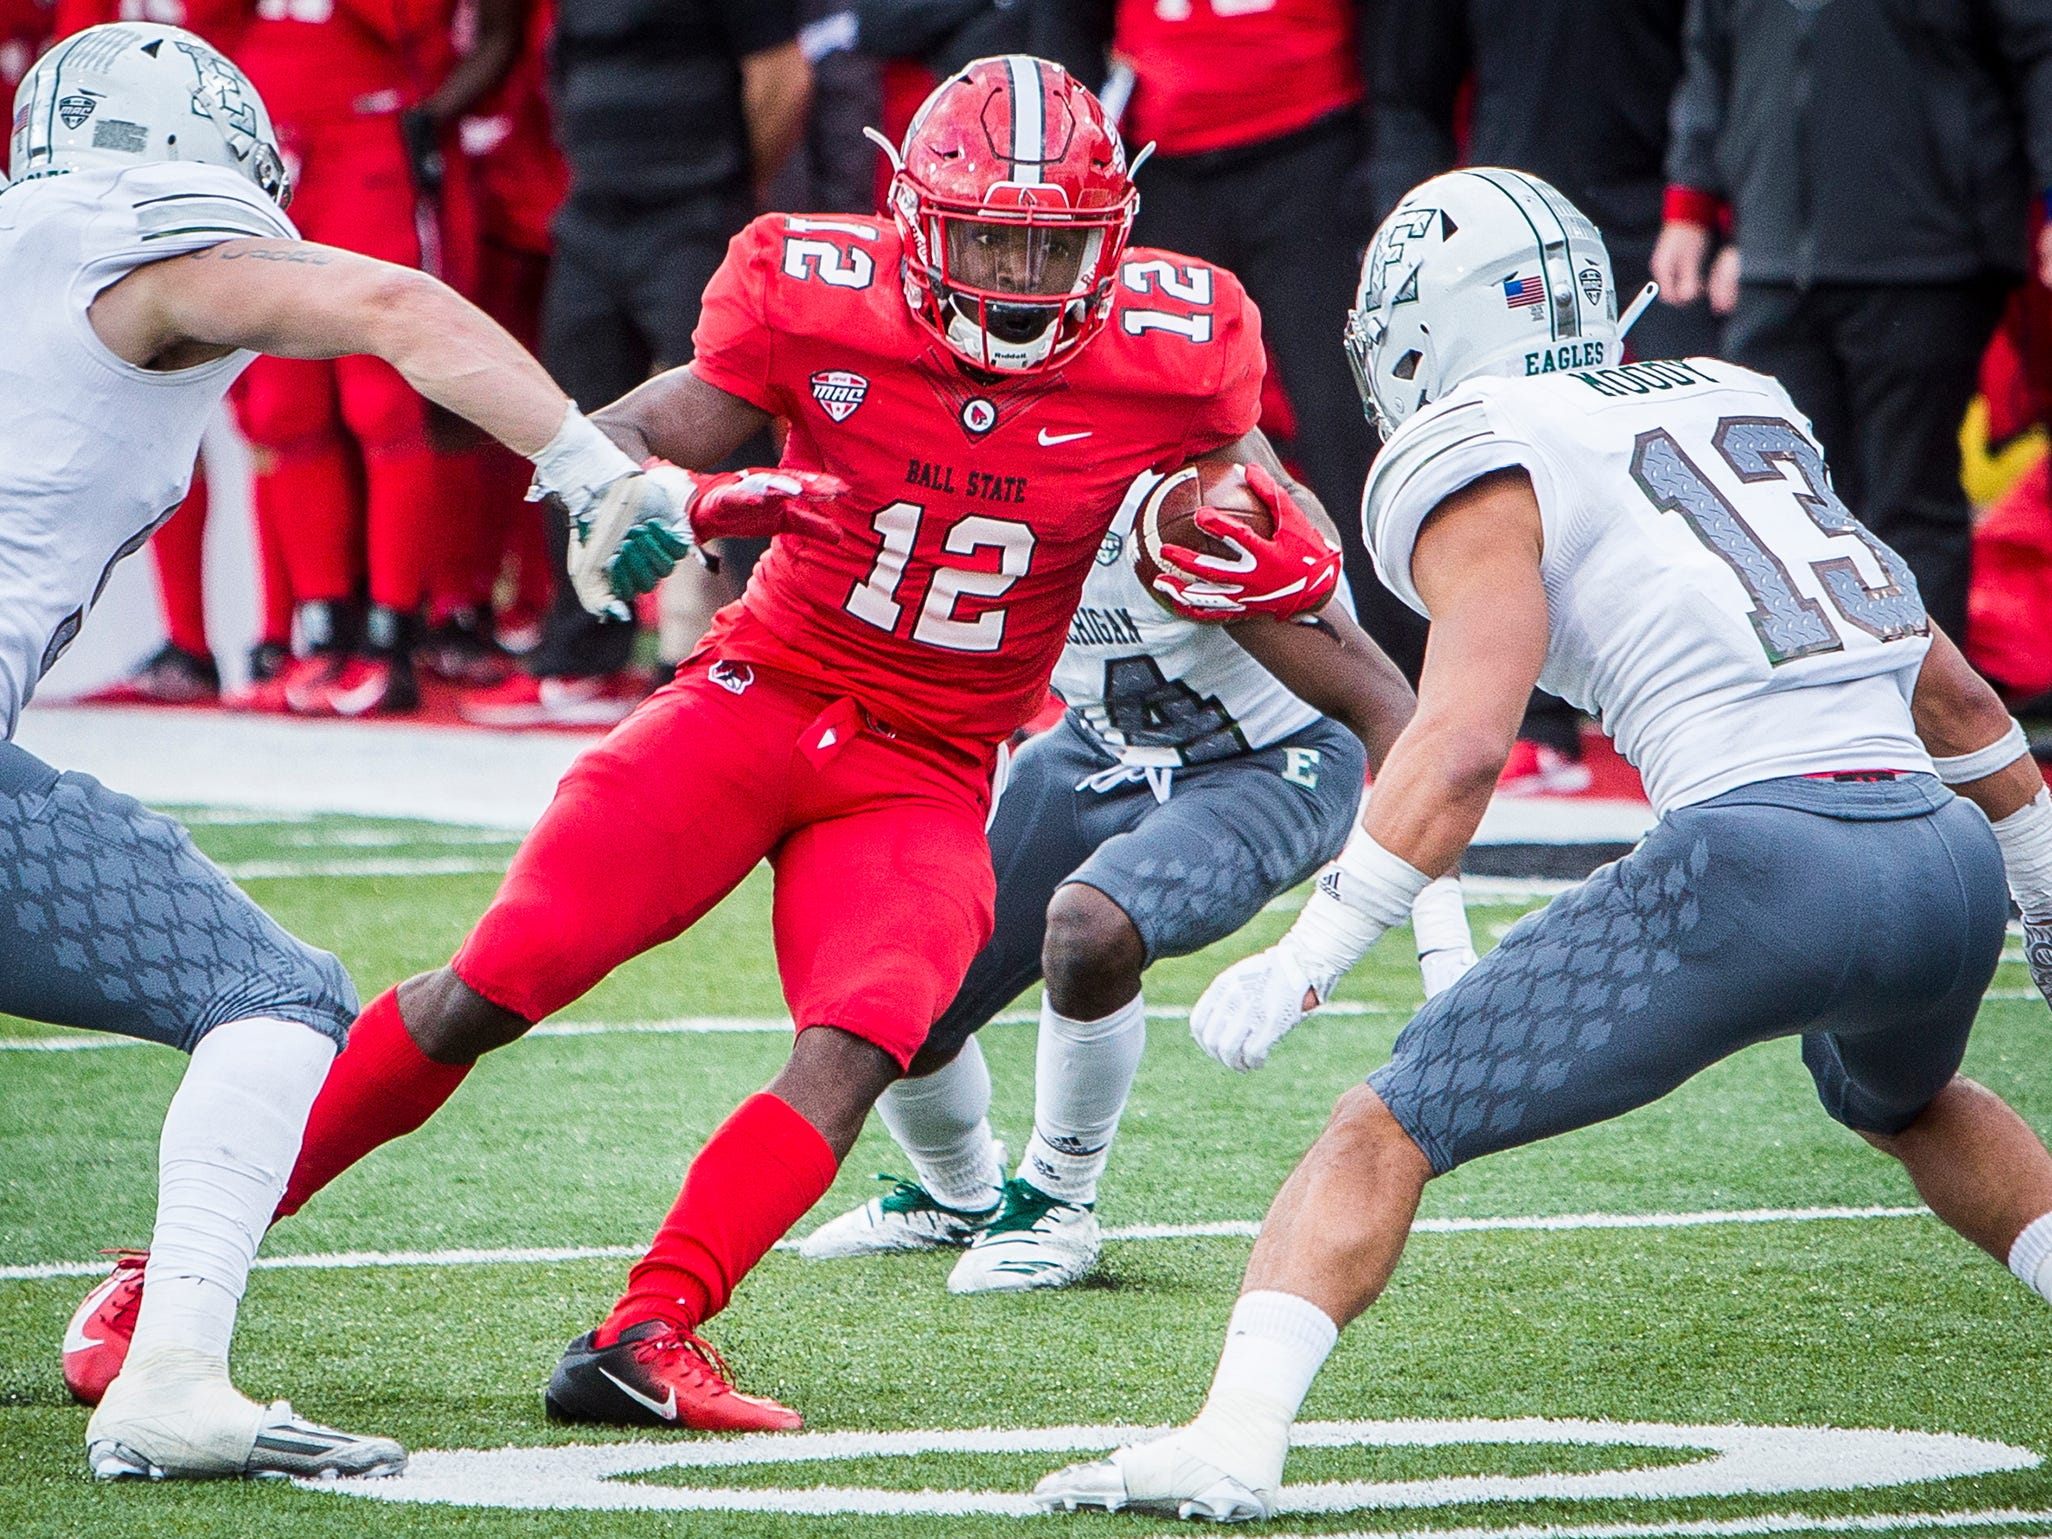 Ball State's Justin Hall runs against Eastern Michigan during their game at Scheumann Stadium Saturday, Oct. 20, 2018.